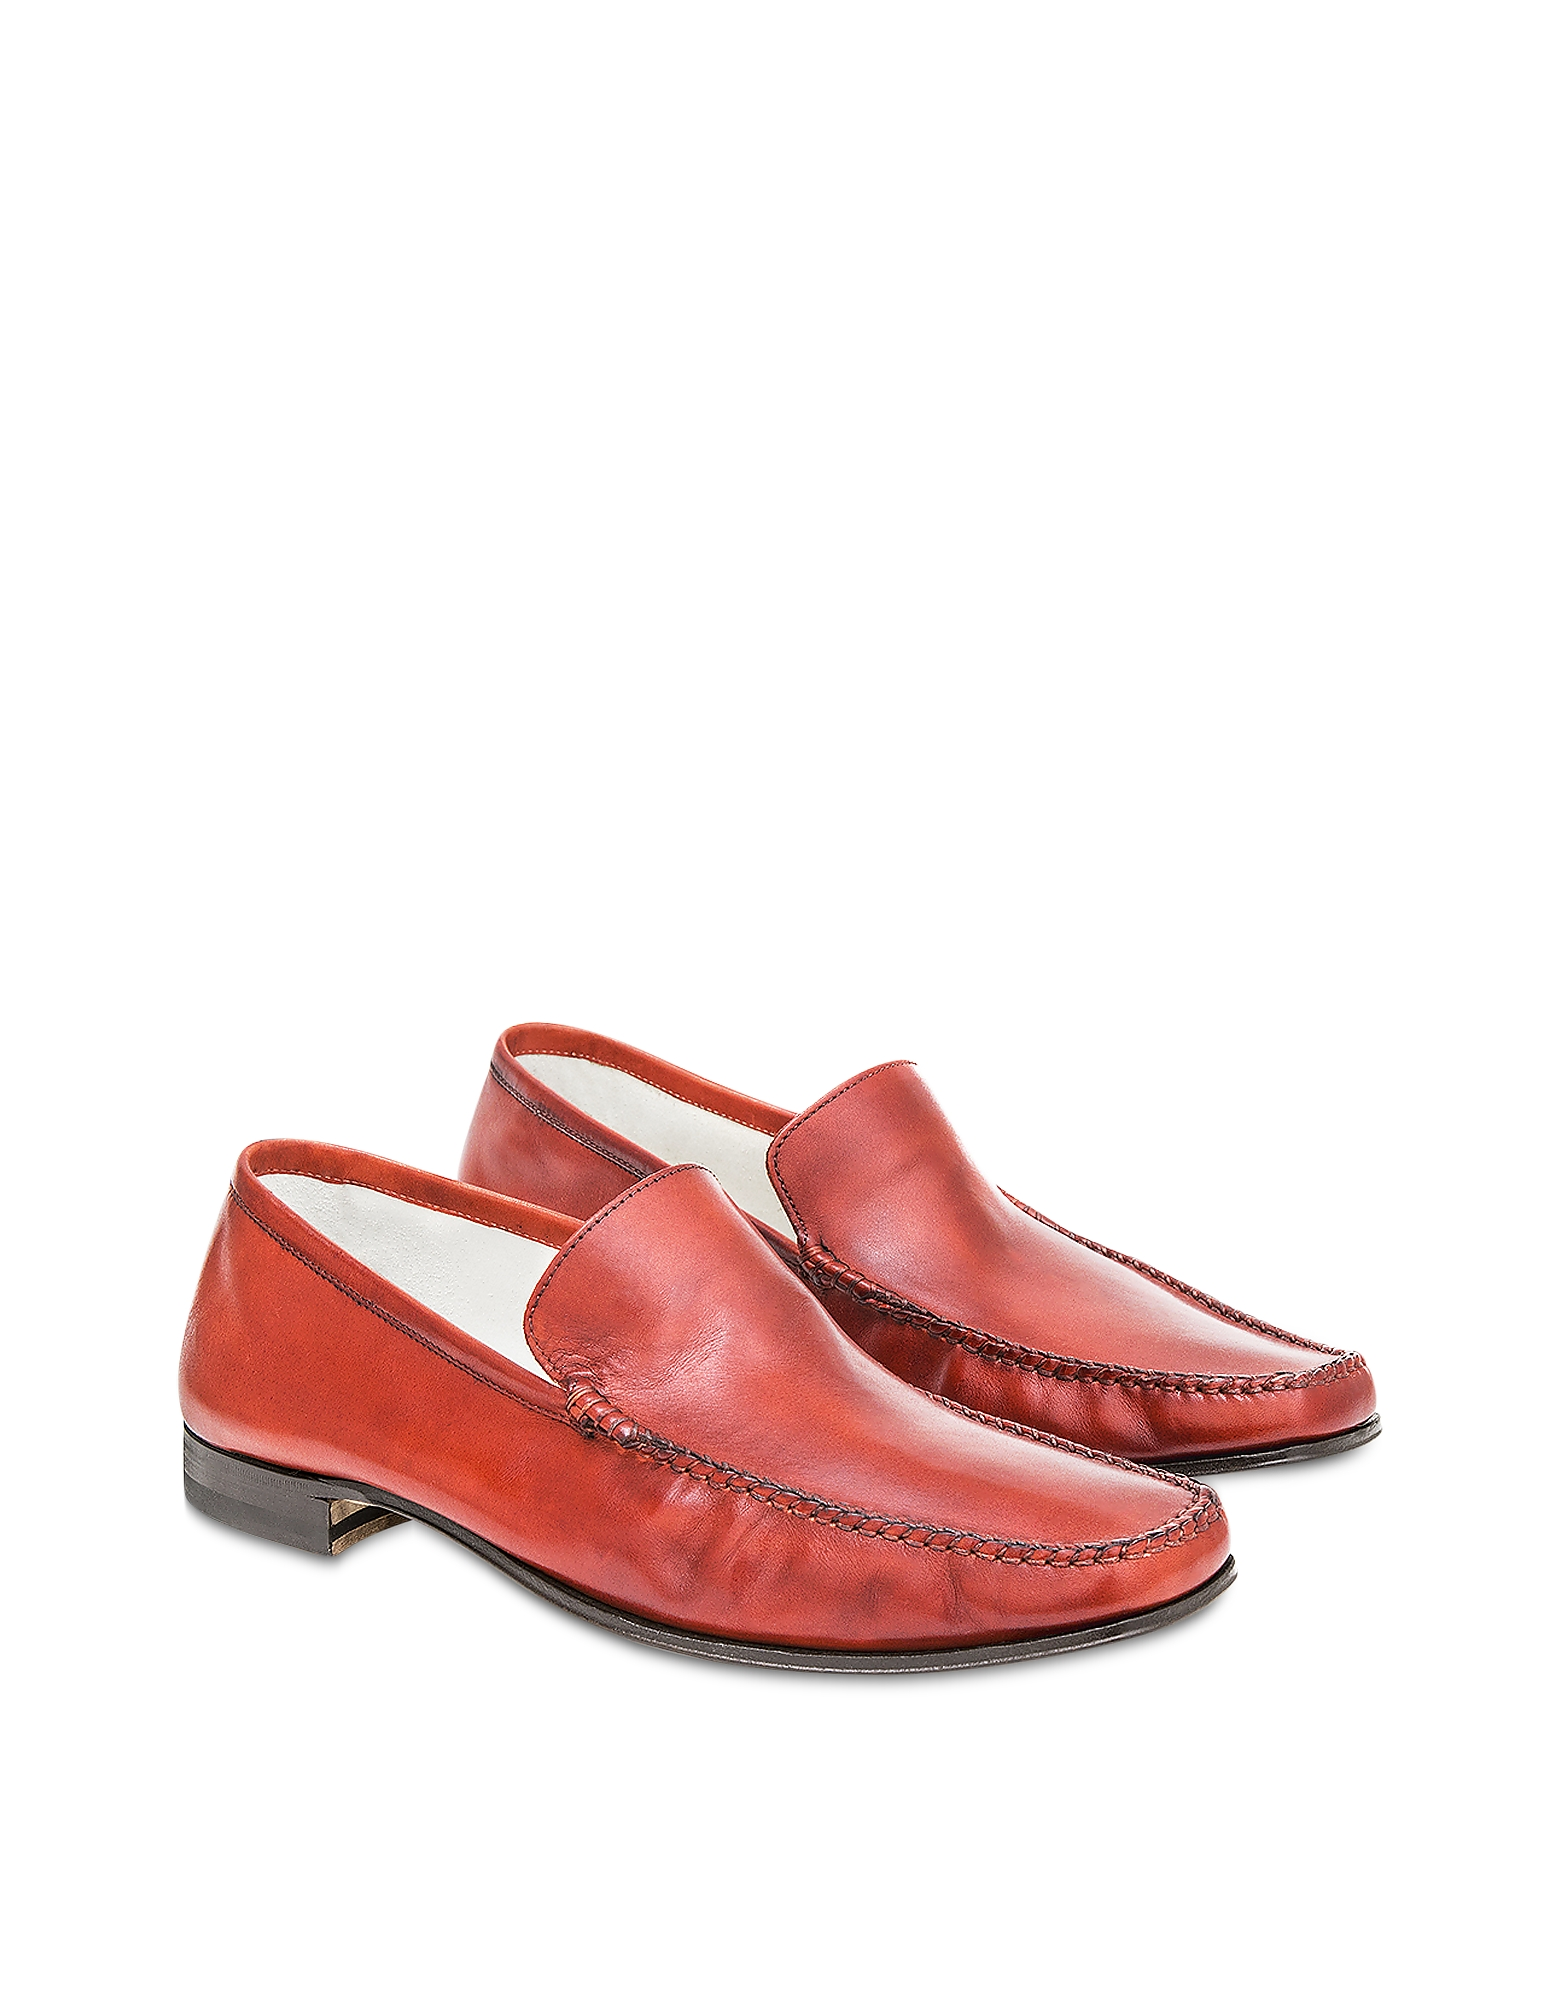 Pakerson Designer Shoes, Red Cerreto Moccasins